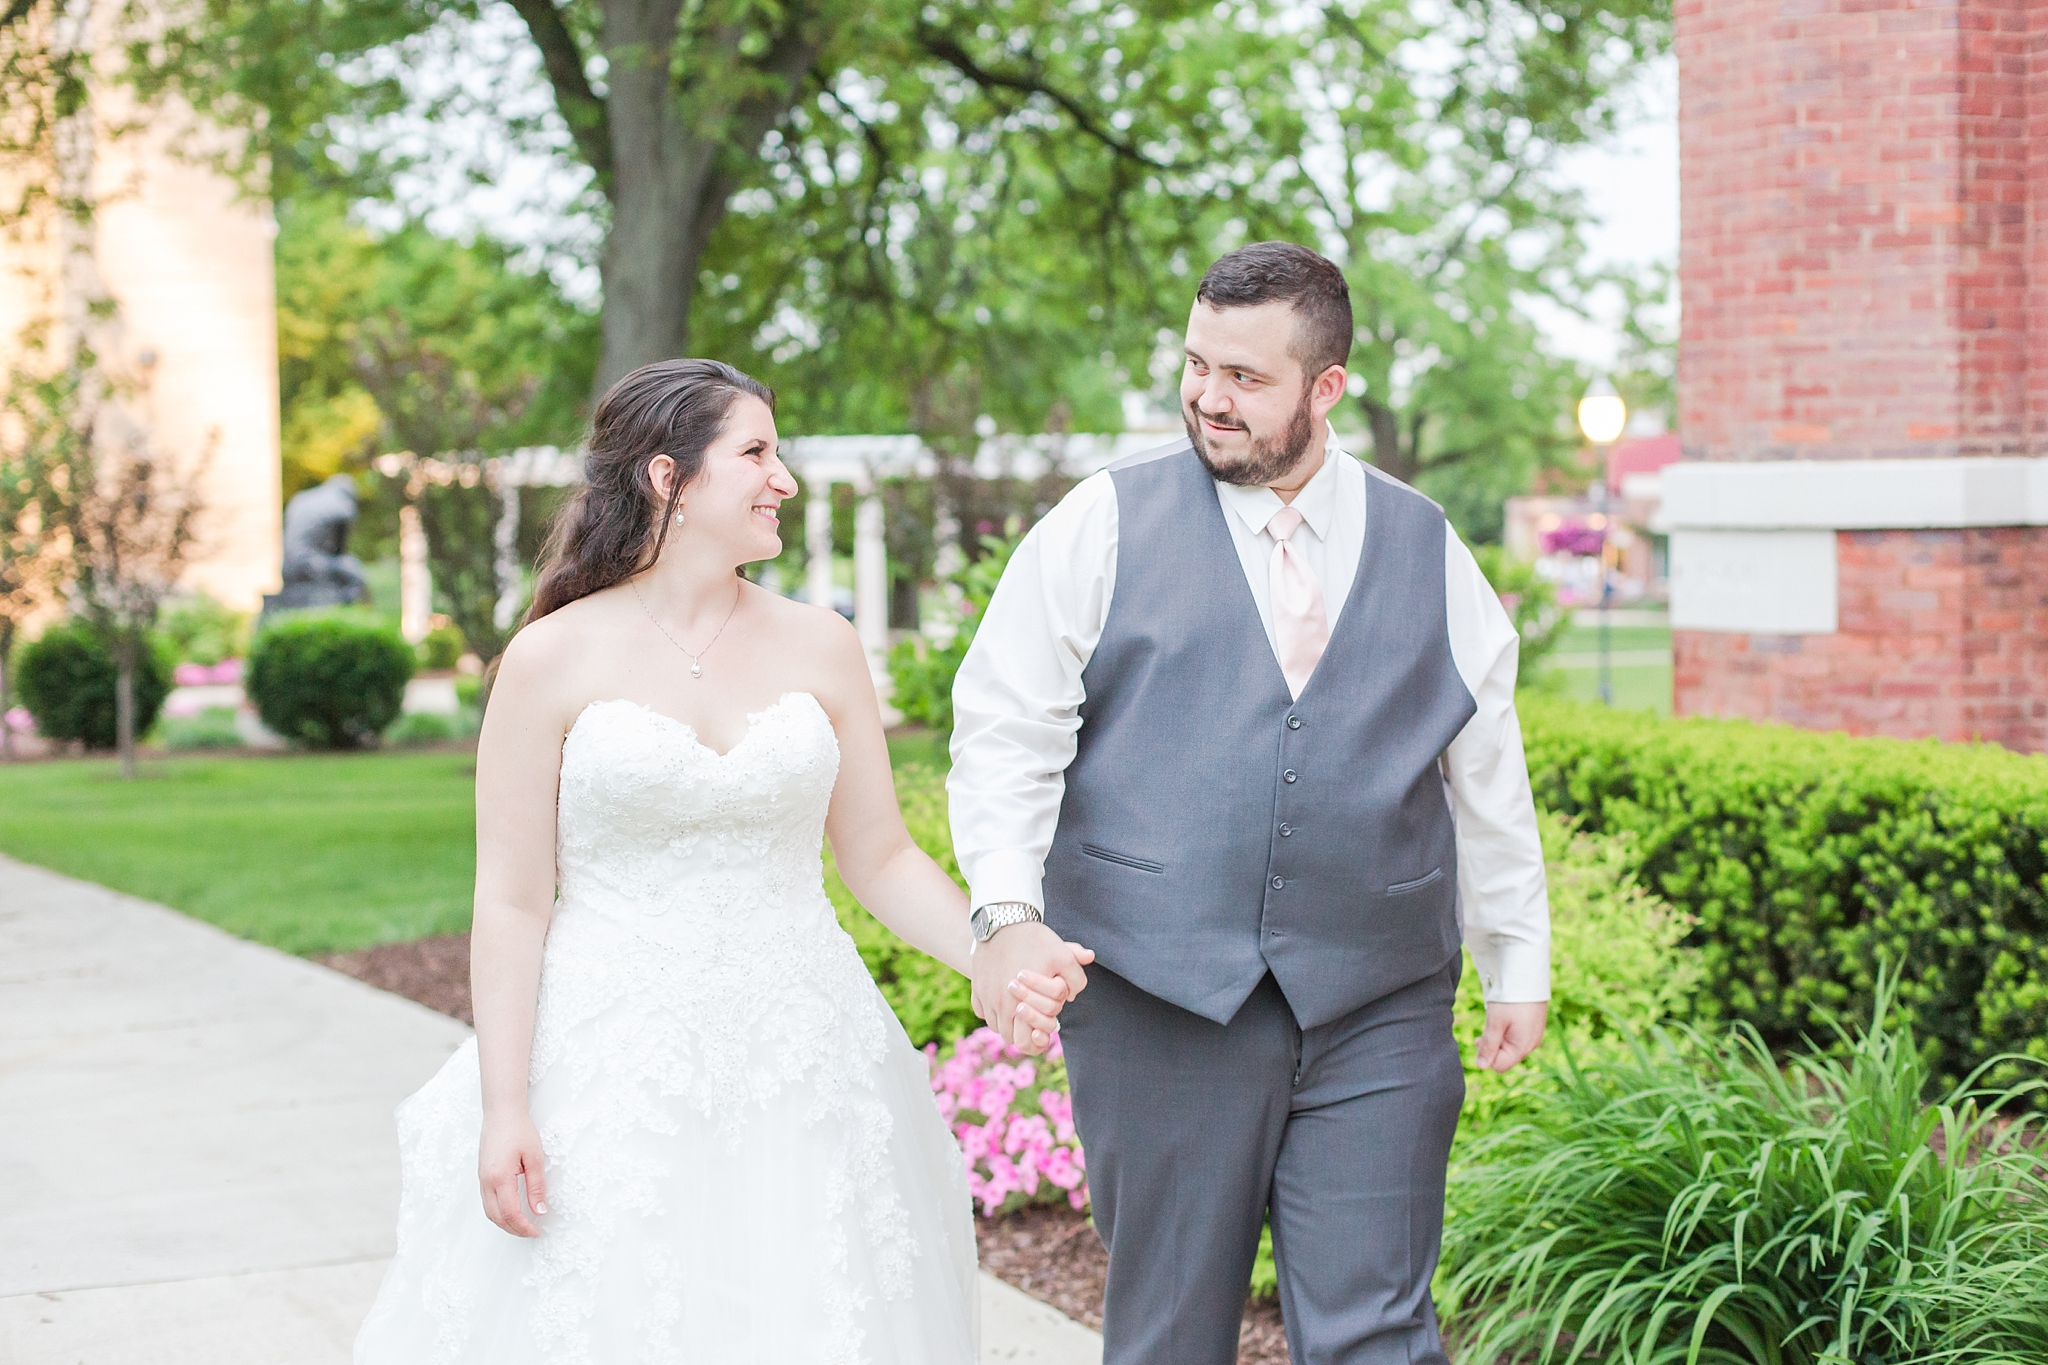 emotional-laid-back-romantic-wedding-photos-at-adrian-college-herrick-chapel-in-adrian-michigan-by-courtney-carolyn-photography_0045.jpg